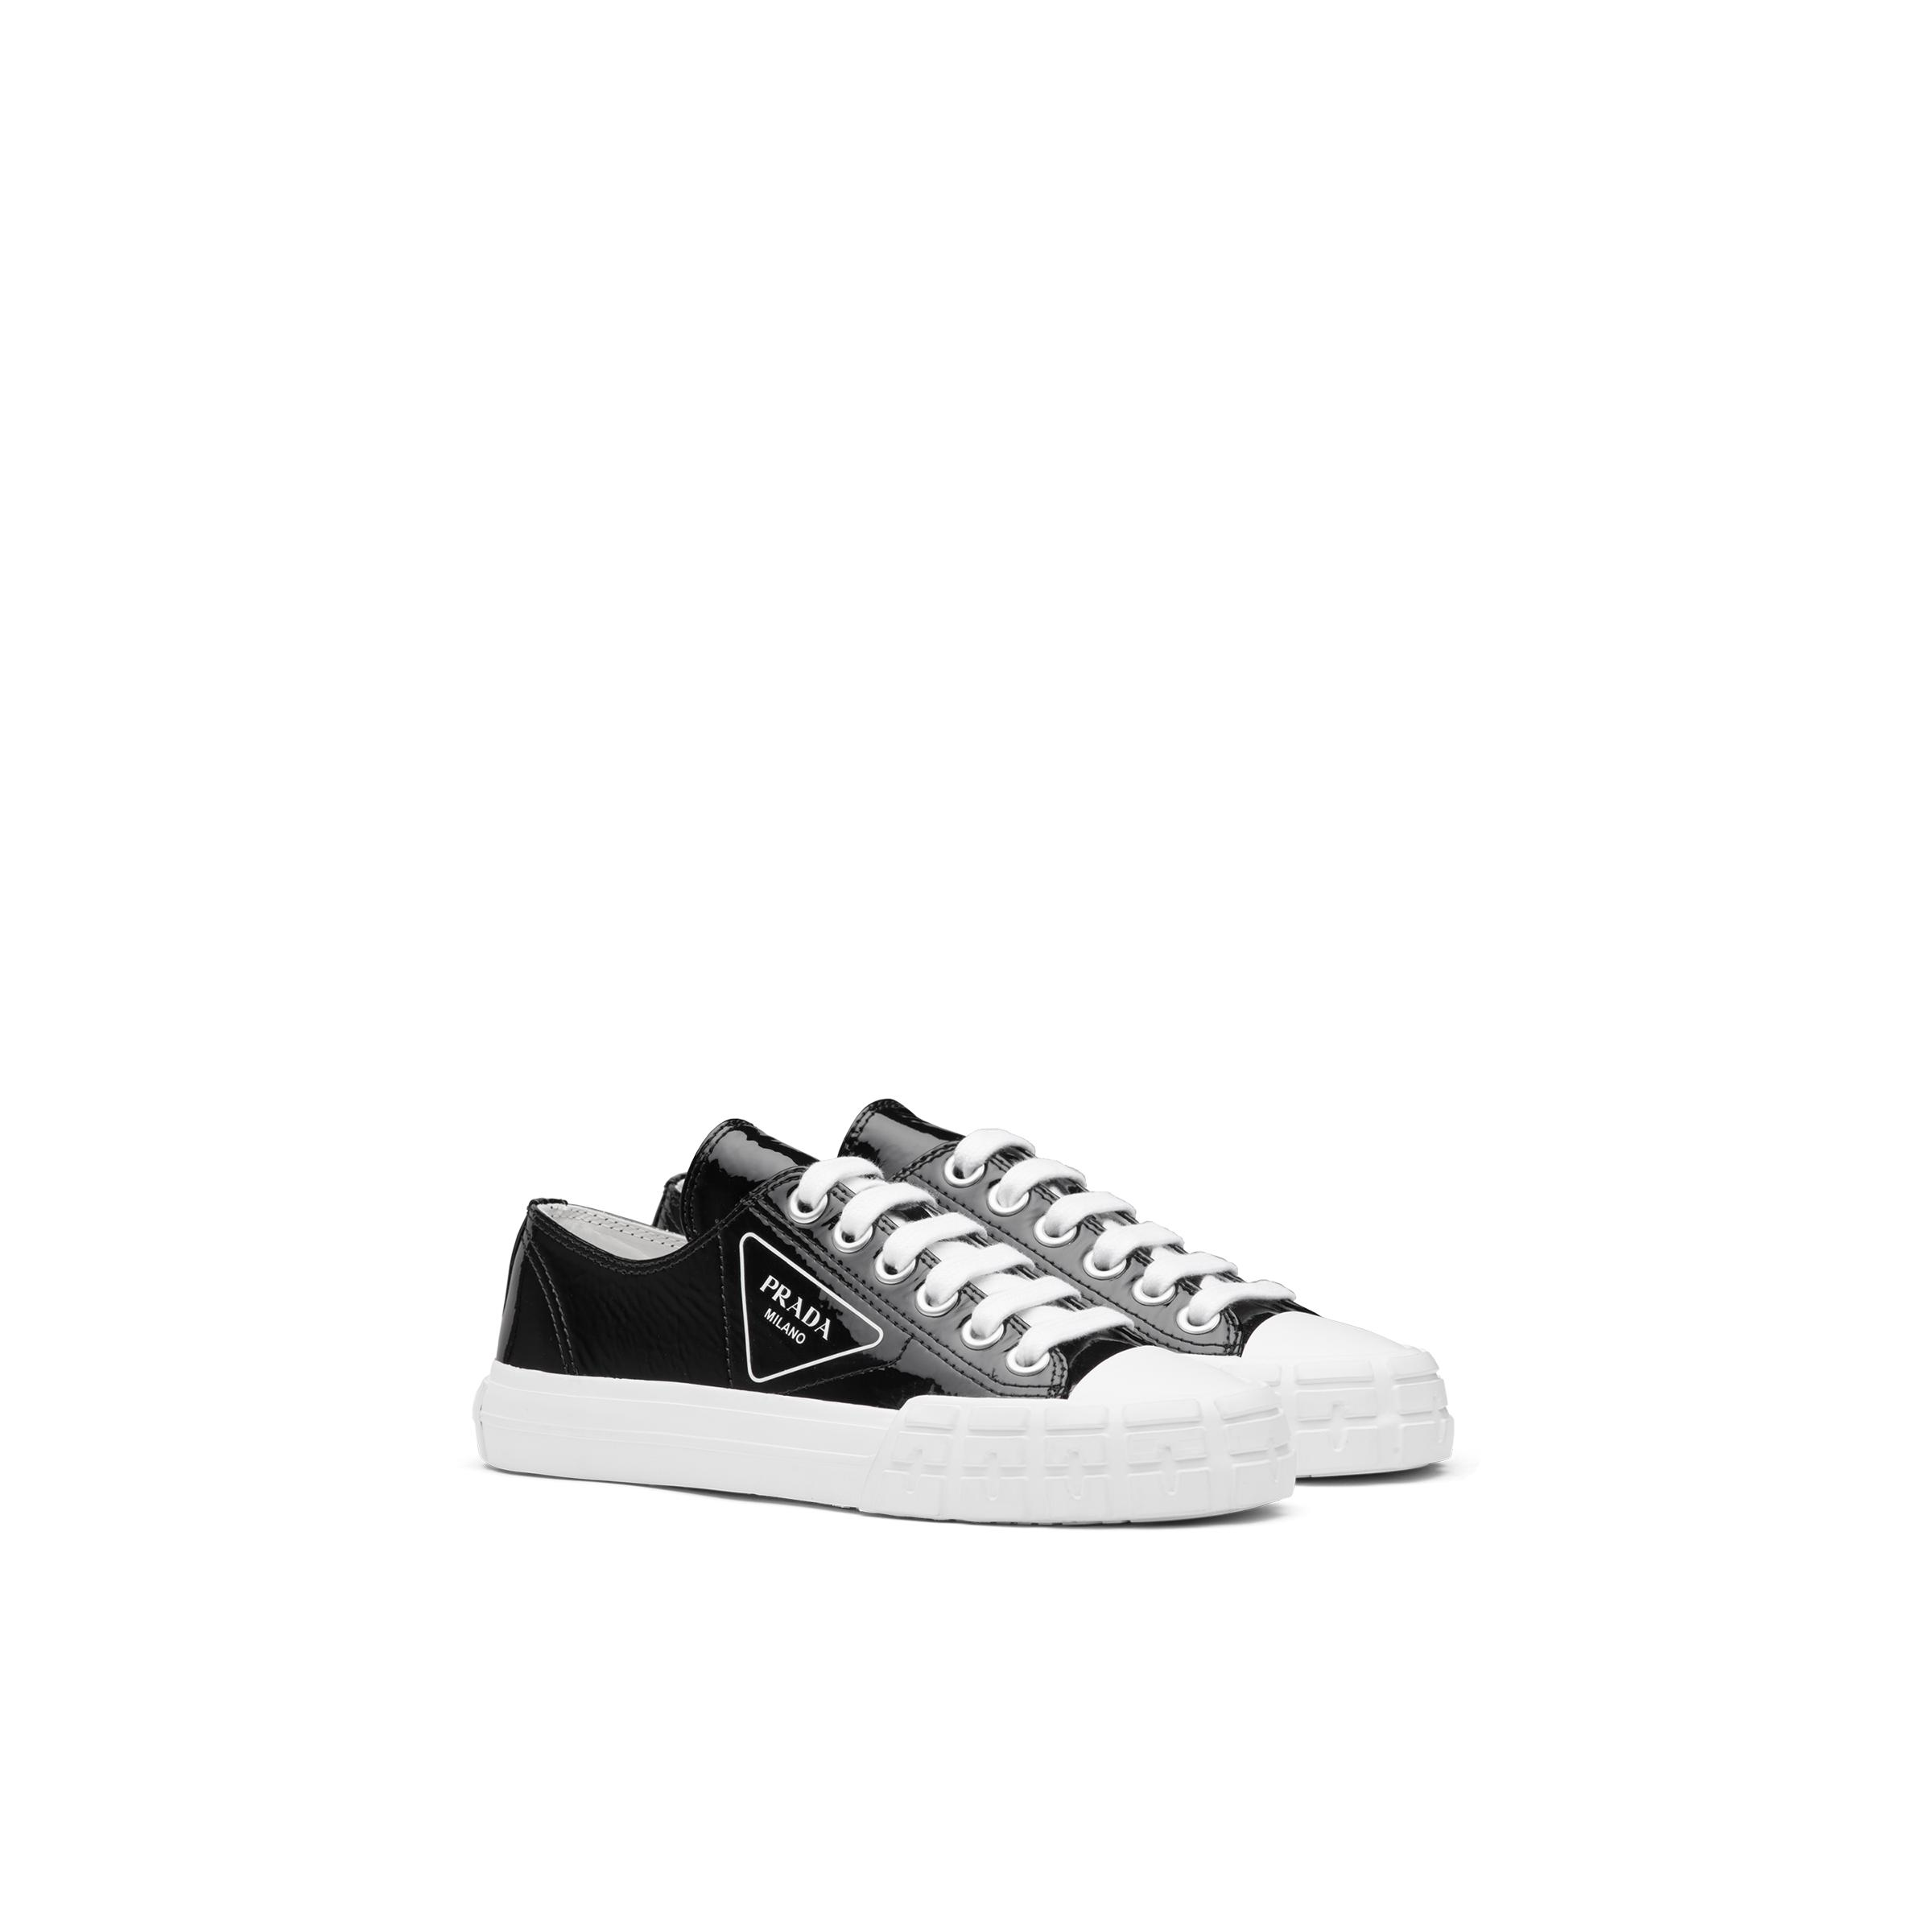 Wheel Patent Leather Sneakers With Vulcanized Rubber Sole Women Black/white